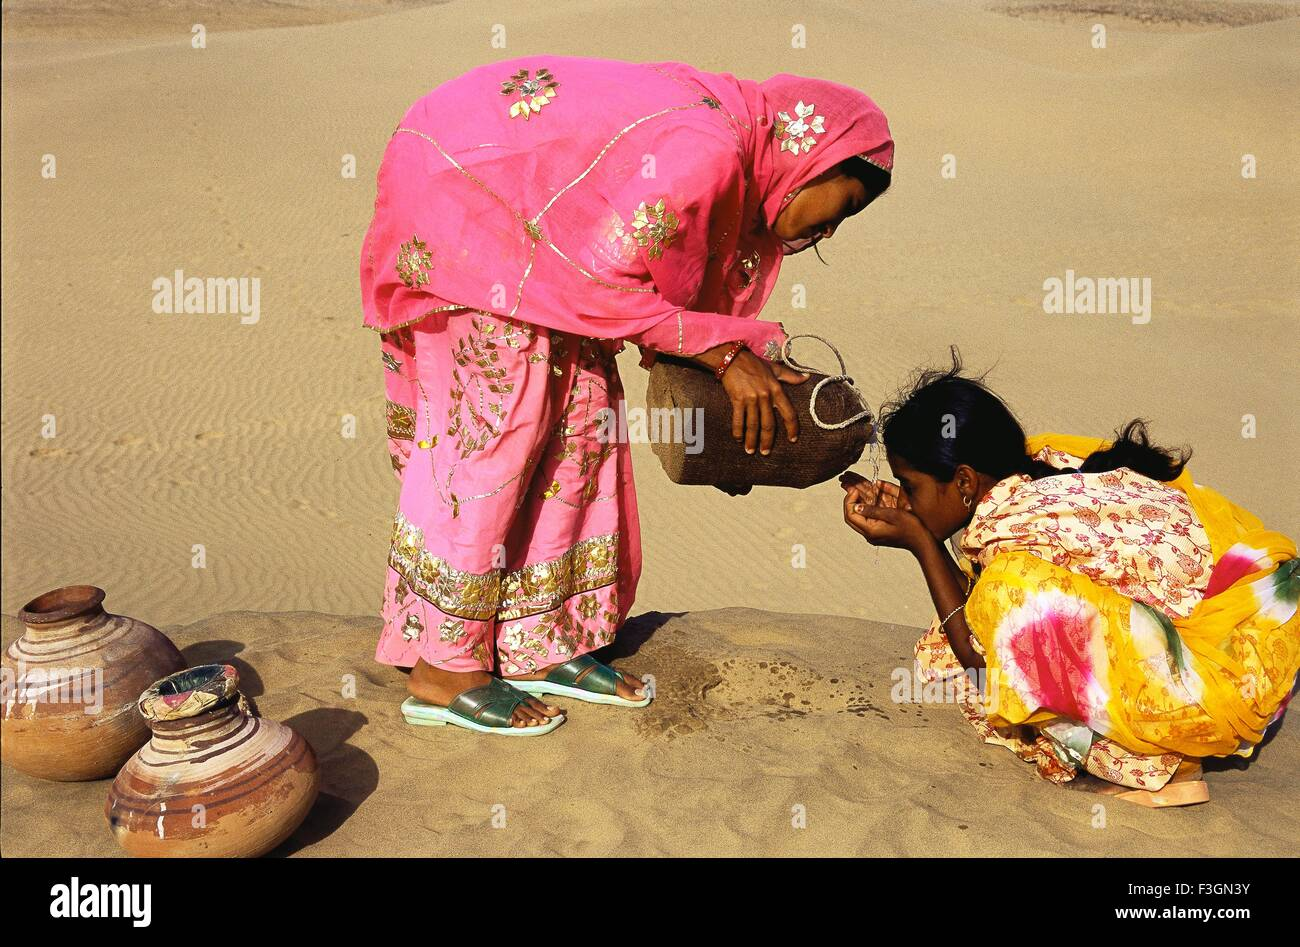 Woman pouring water from leather bag giving to other woman for quenching thirst ; Khuhri ; Jaisalmer ; Rajasthan - Stock Image